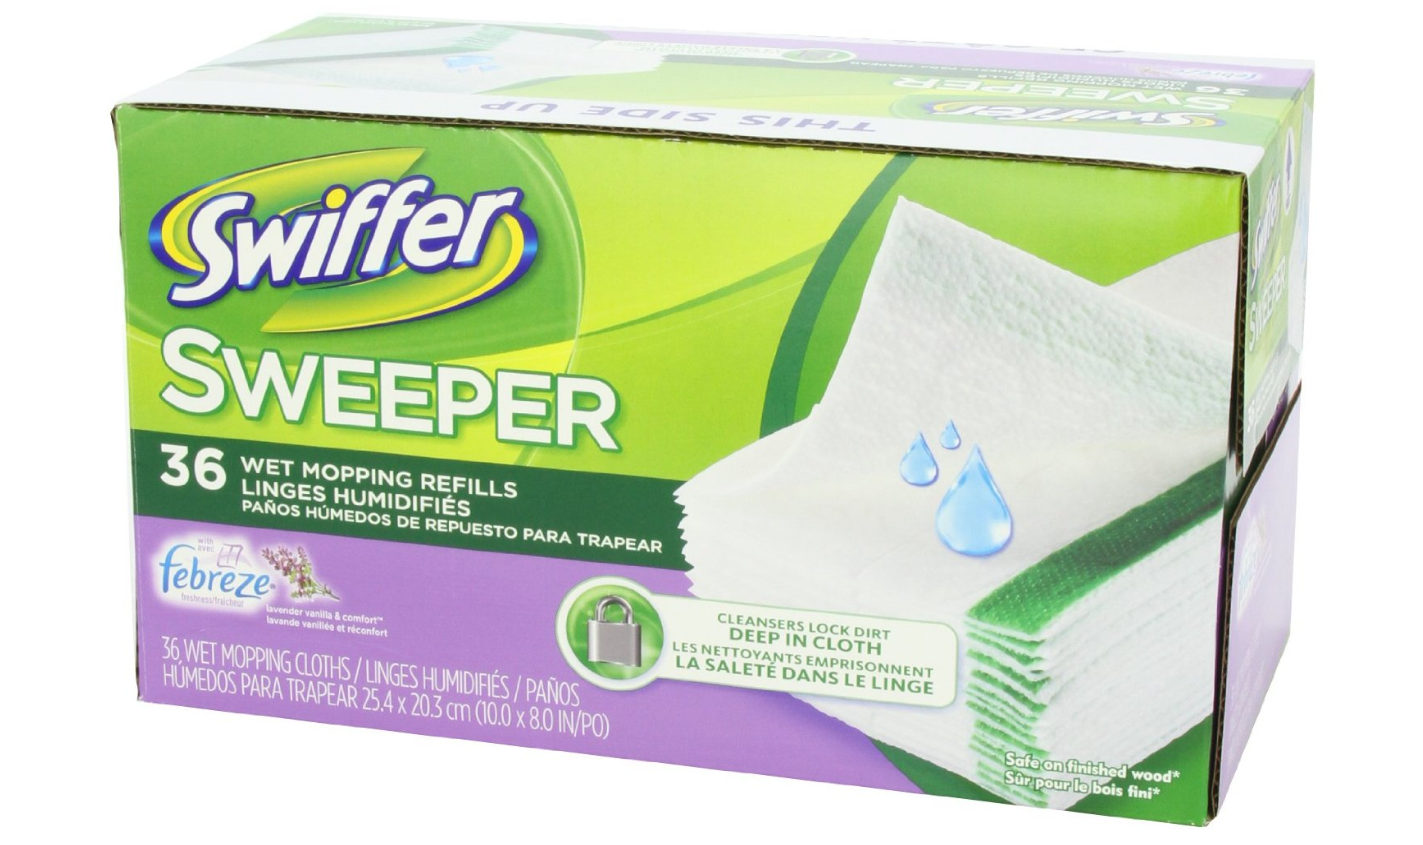 Swiffer Sweeper Wet Mopping Cloths 36-Pack Only $8.47 + FREE Shipping!